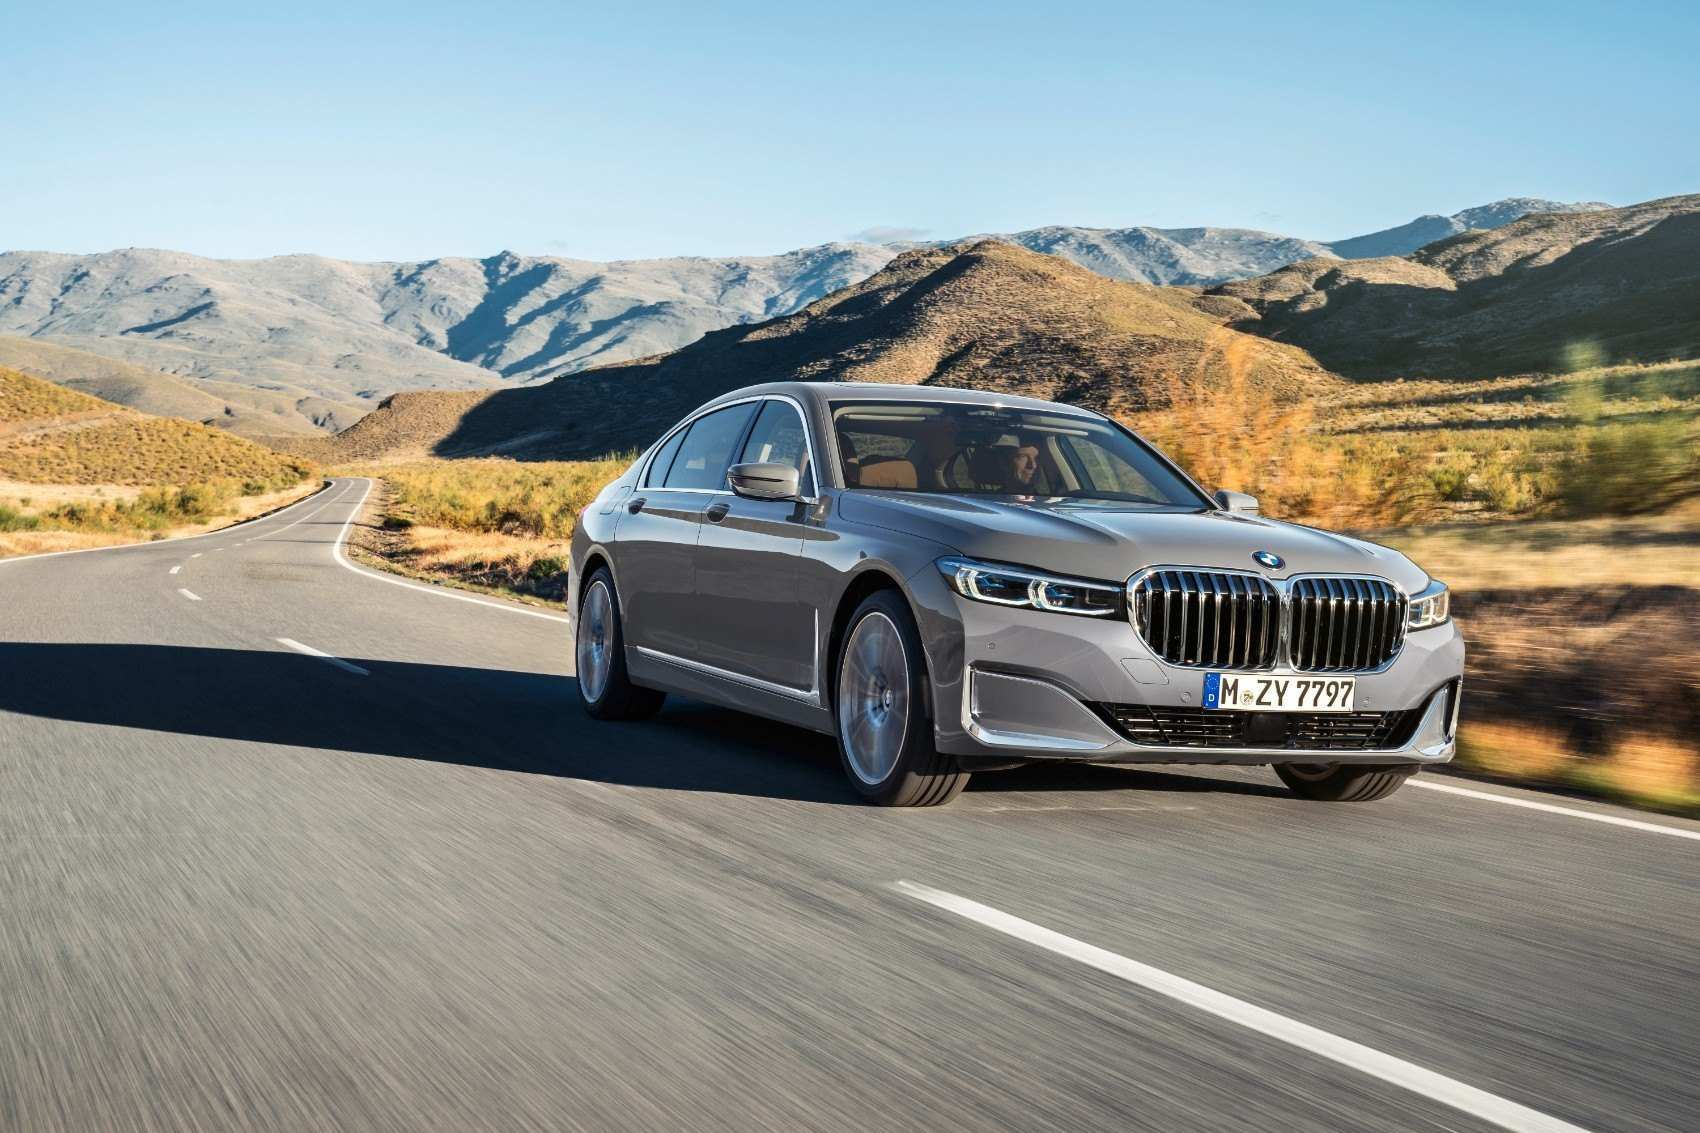 94 The 2020 BMW 7 Series Order Guide Rumors